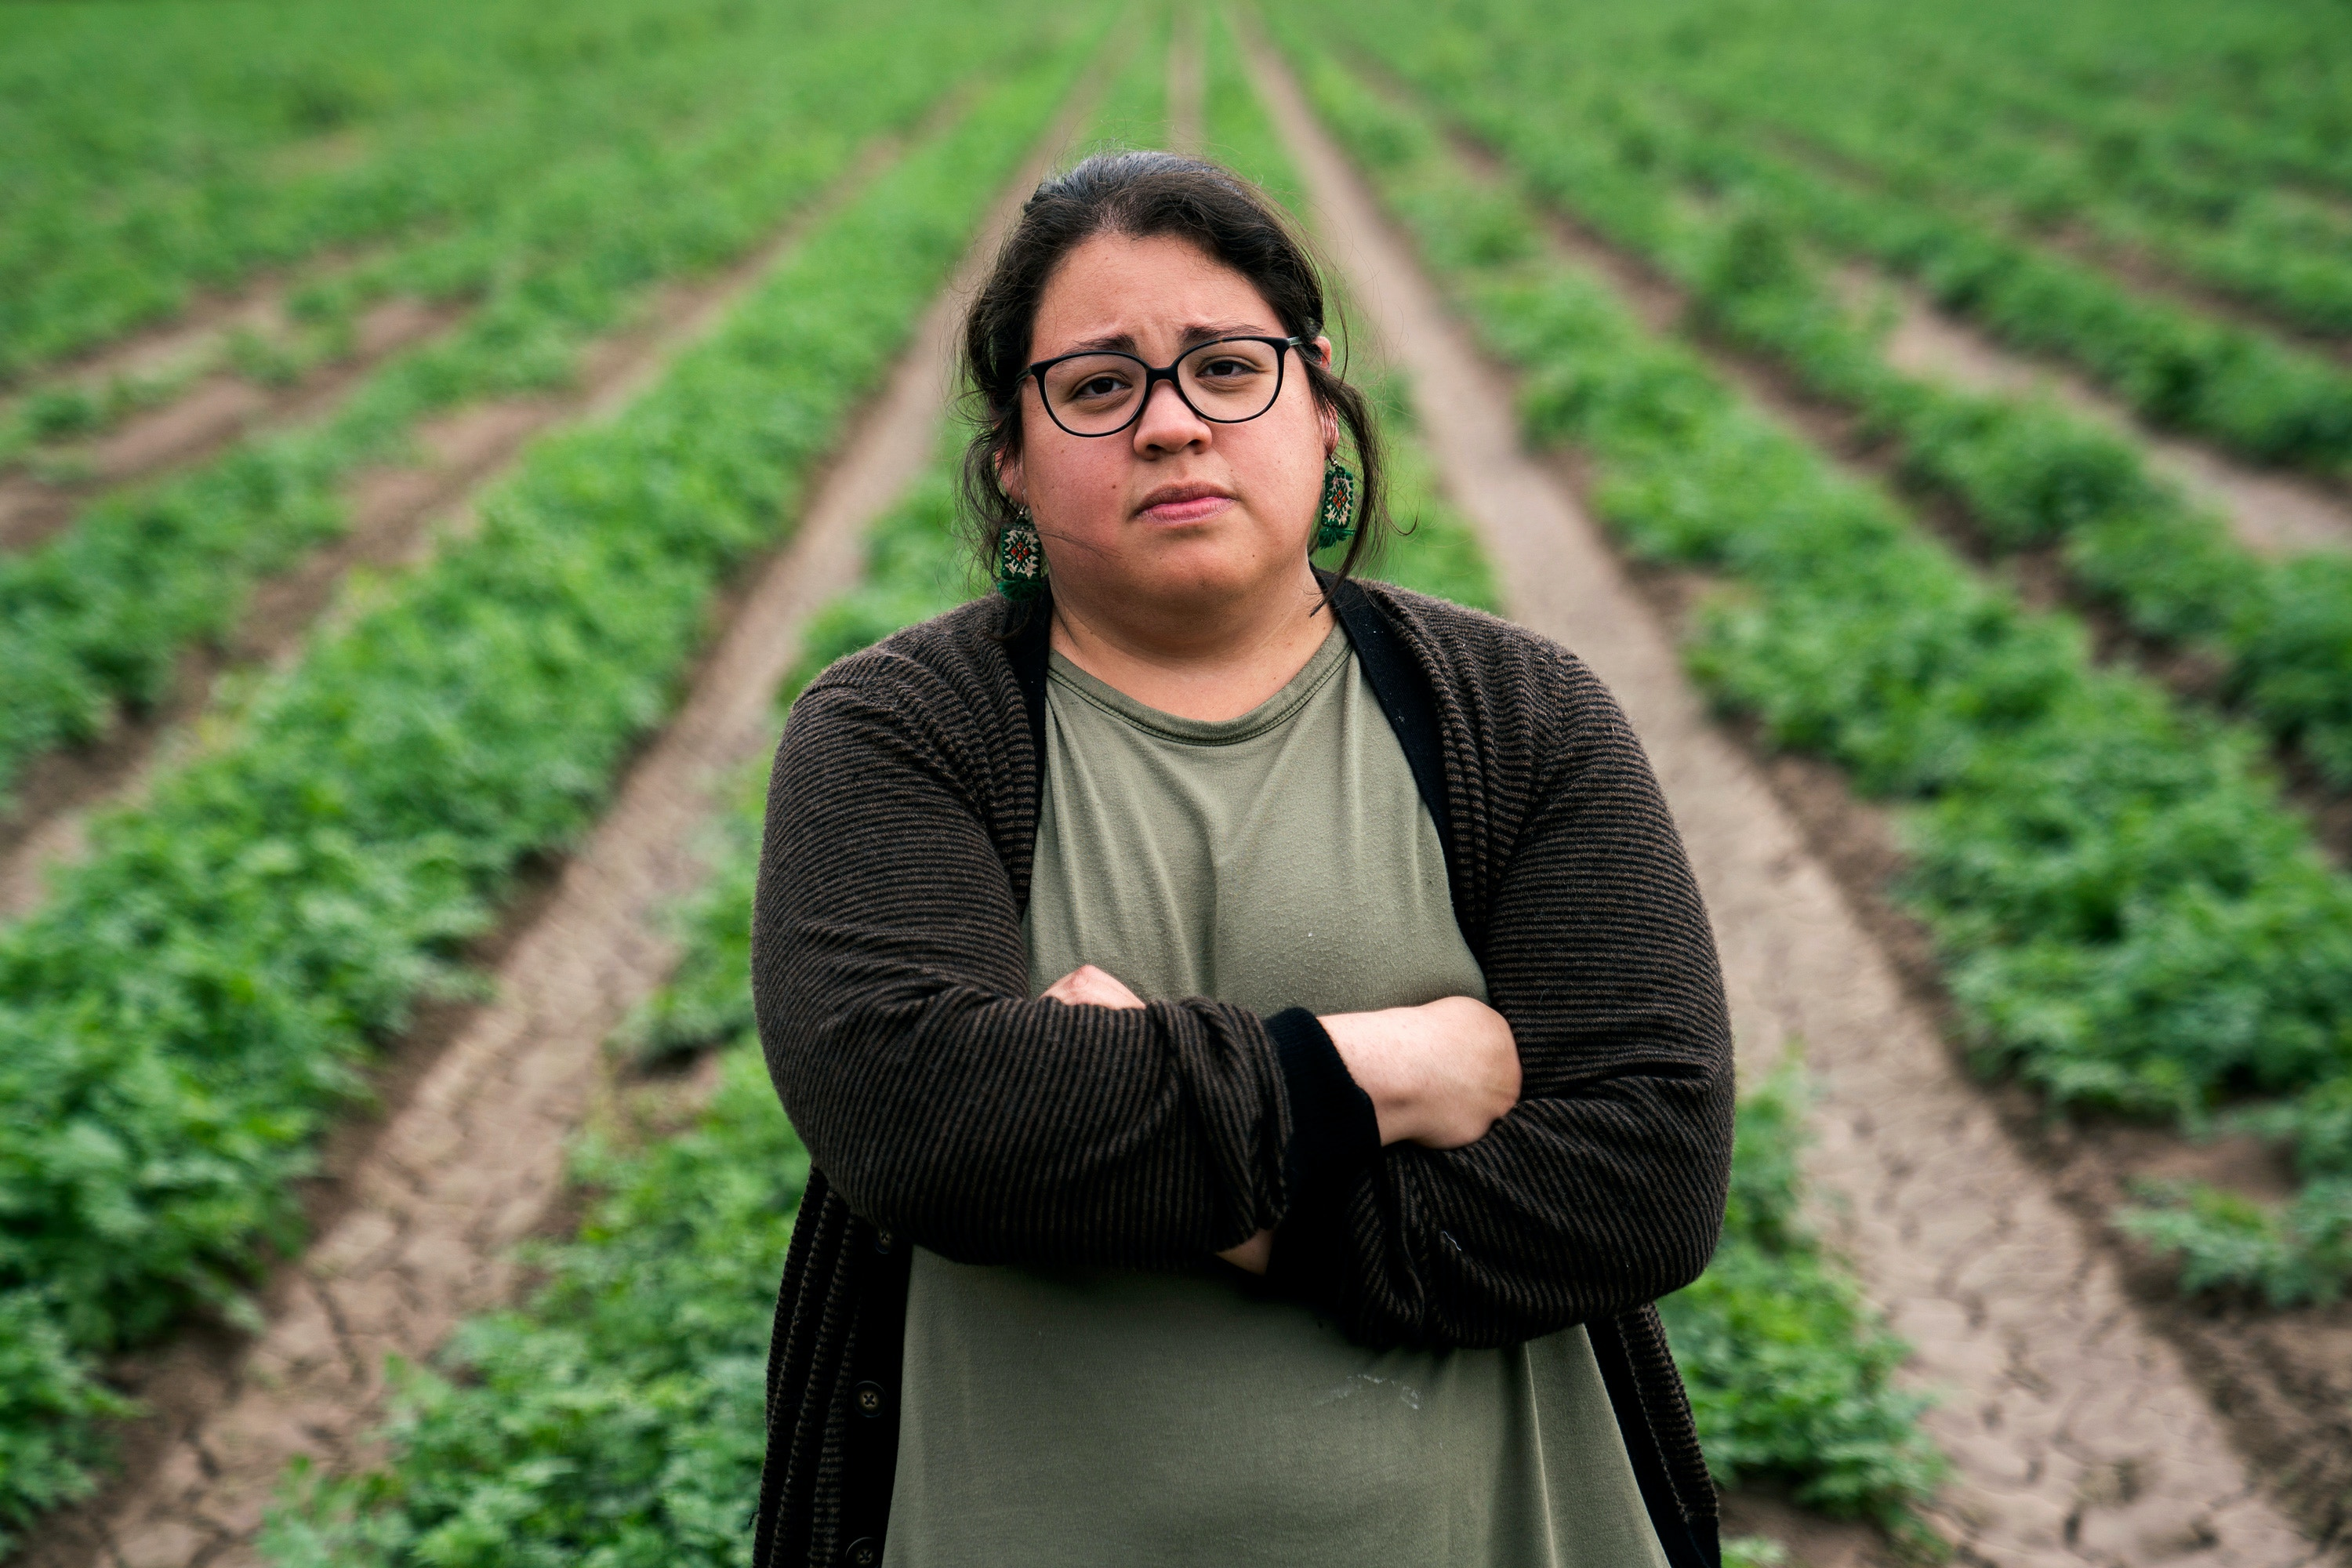 Rebekah Hinojosa, a local organizer whose ancestors are buried near already-built border barrier in Cameron County poses for a photo near Yalui Village in Hidalgo County, Texas on March 17, 2019.Photo: Verónica G. Cárdenas for The Intercept